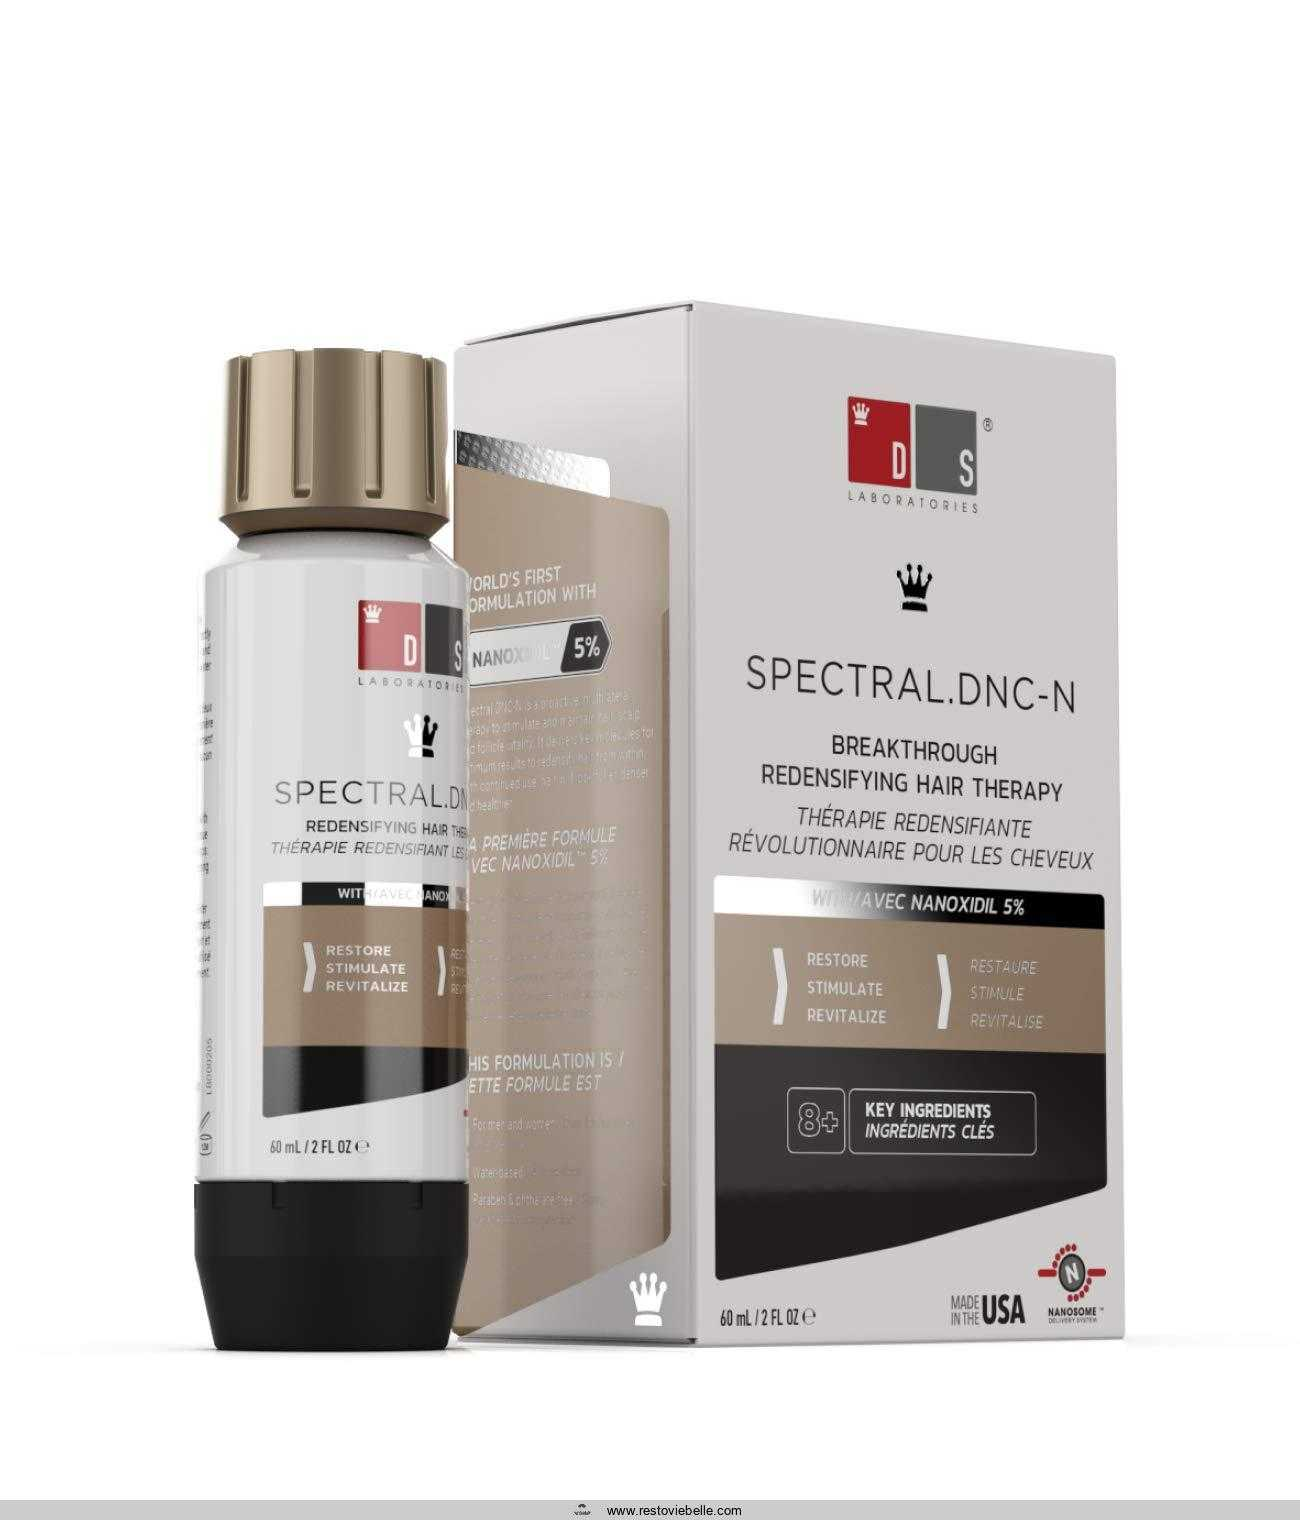 Ds Laboratories Spectral Dnc-n Redensifying Hair Product